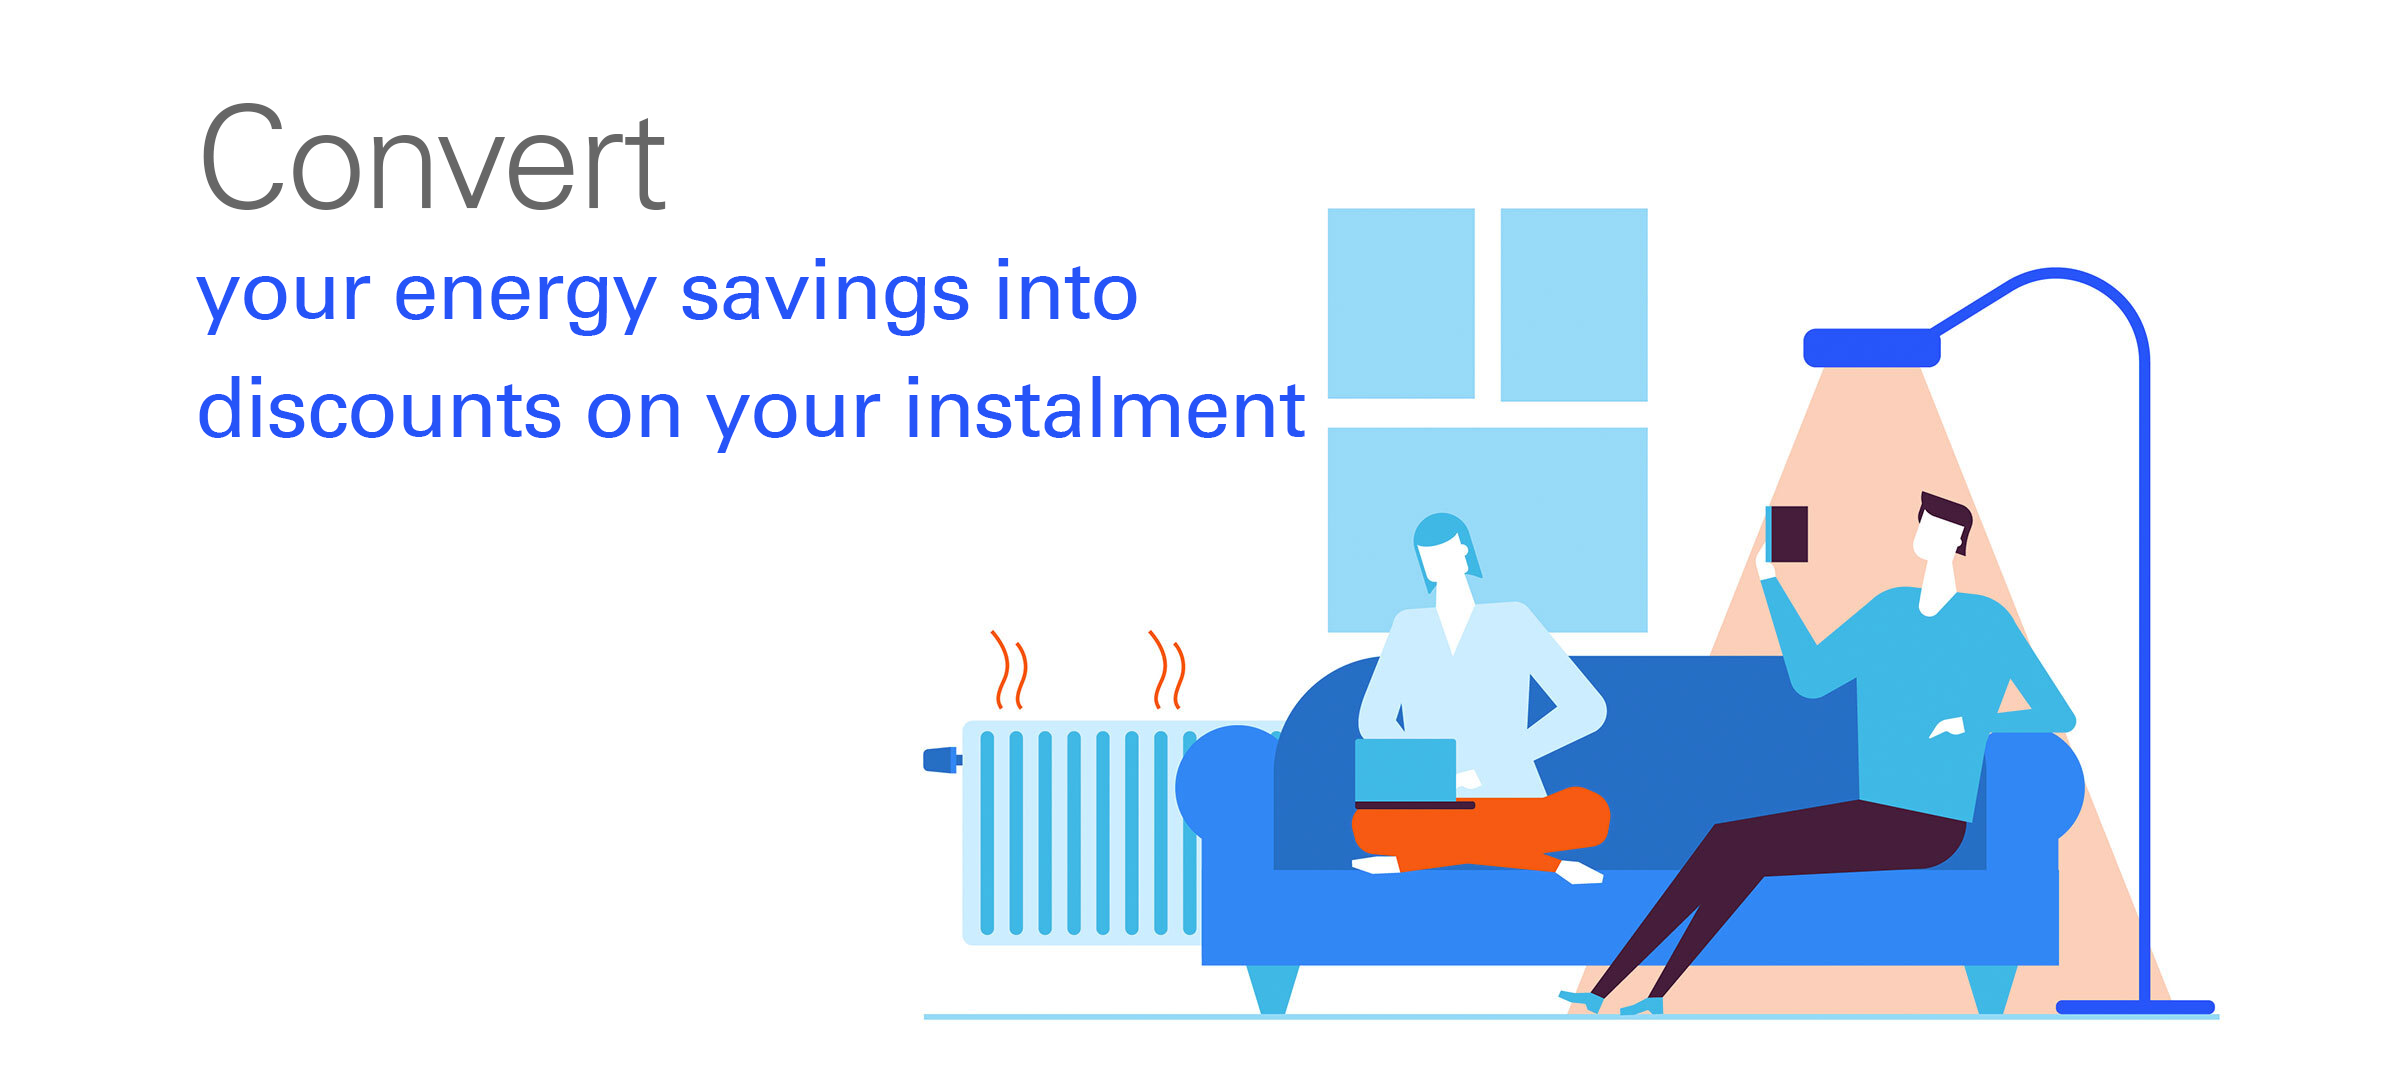 Convert your energy savings into discounts on your instalment.